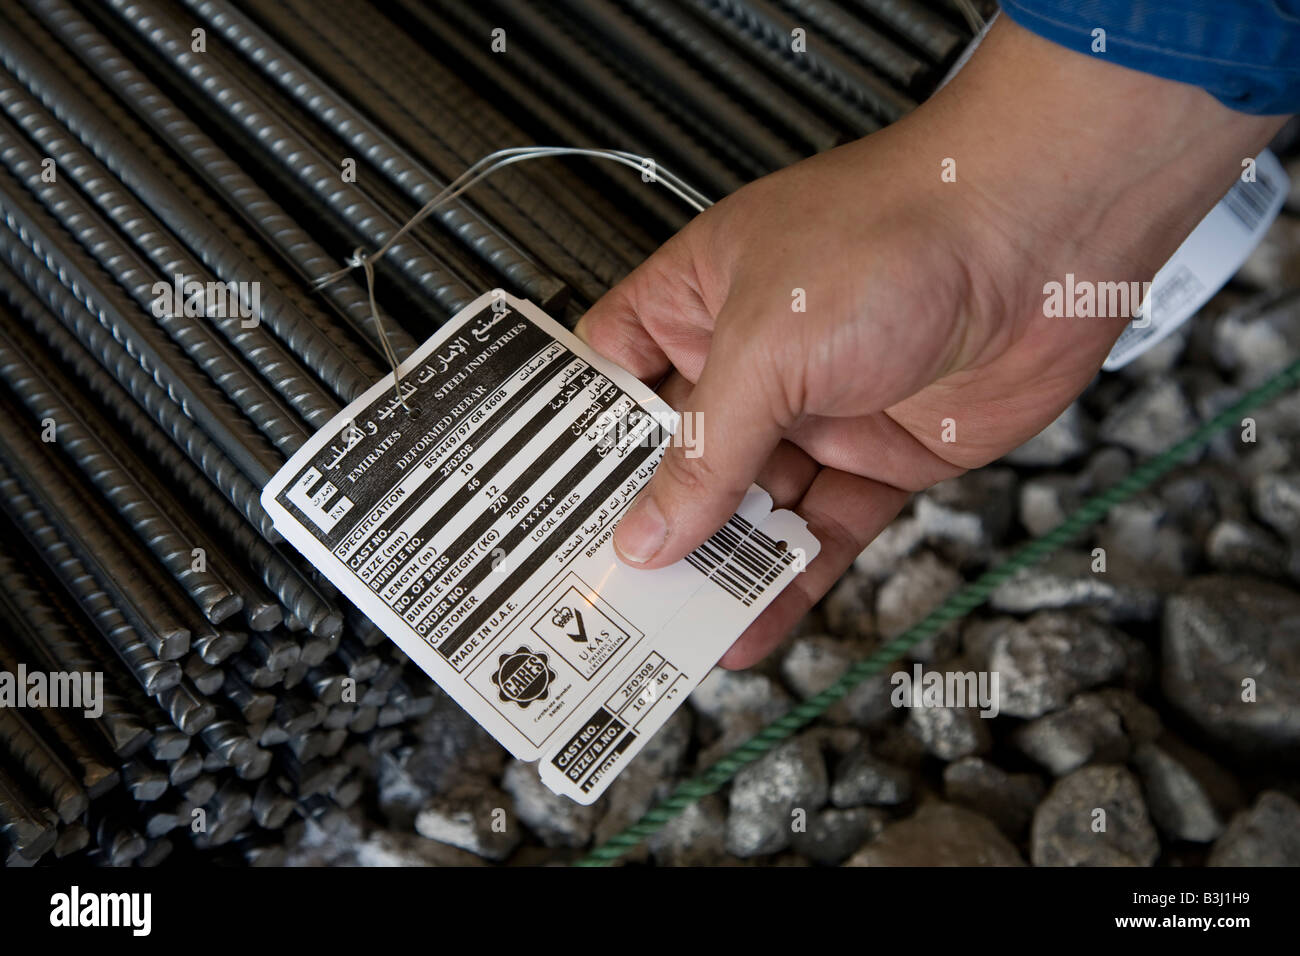 Tag Mill Stock Photos & Tag Mill Stock Images - Alamy